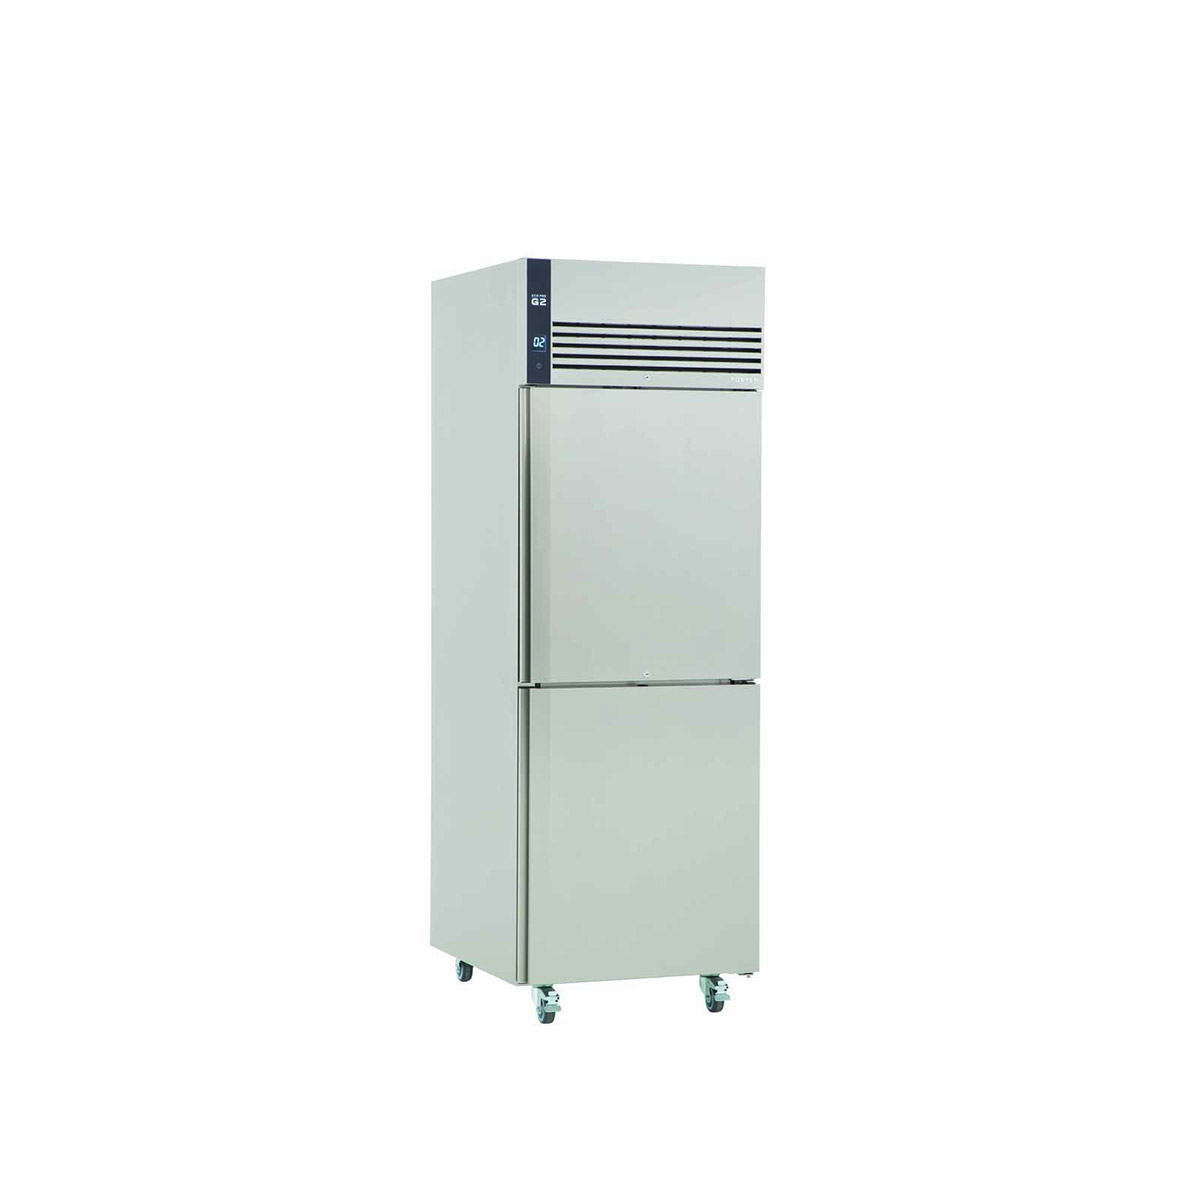 Foster EcoPro G2 EP700L2 (10-145) 600 Ltr Stainless Steel Half Door Upright Freezer